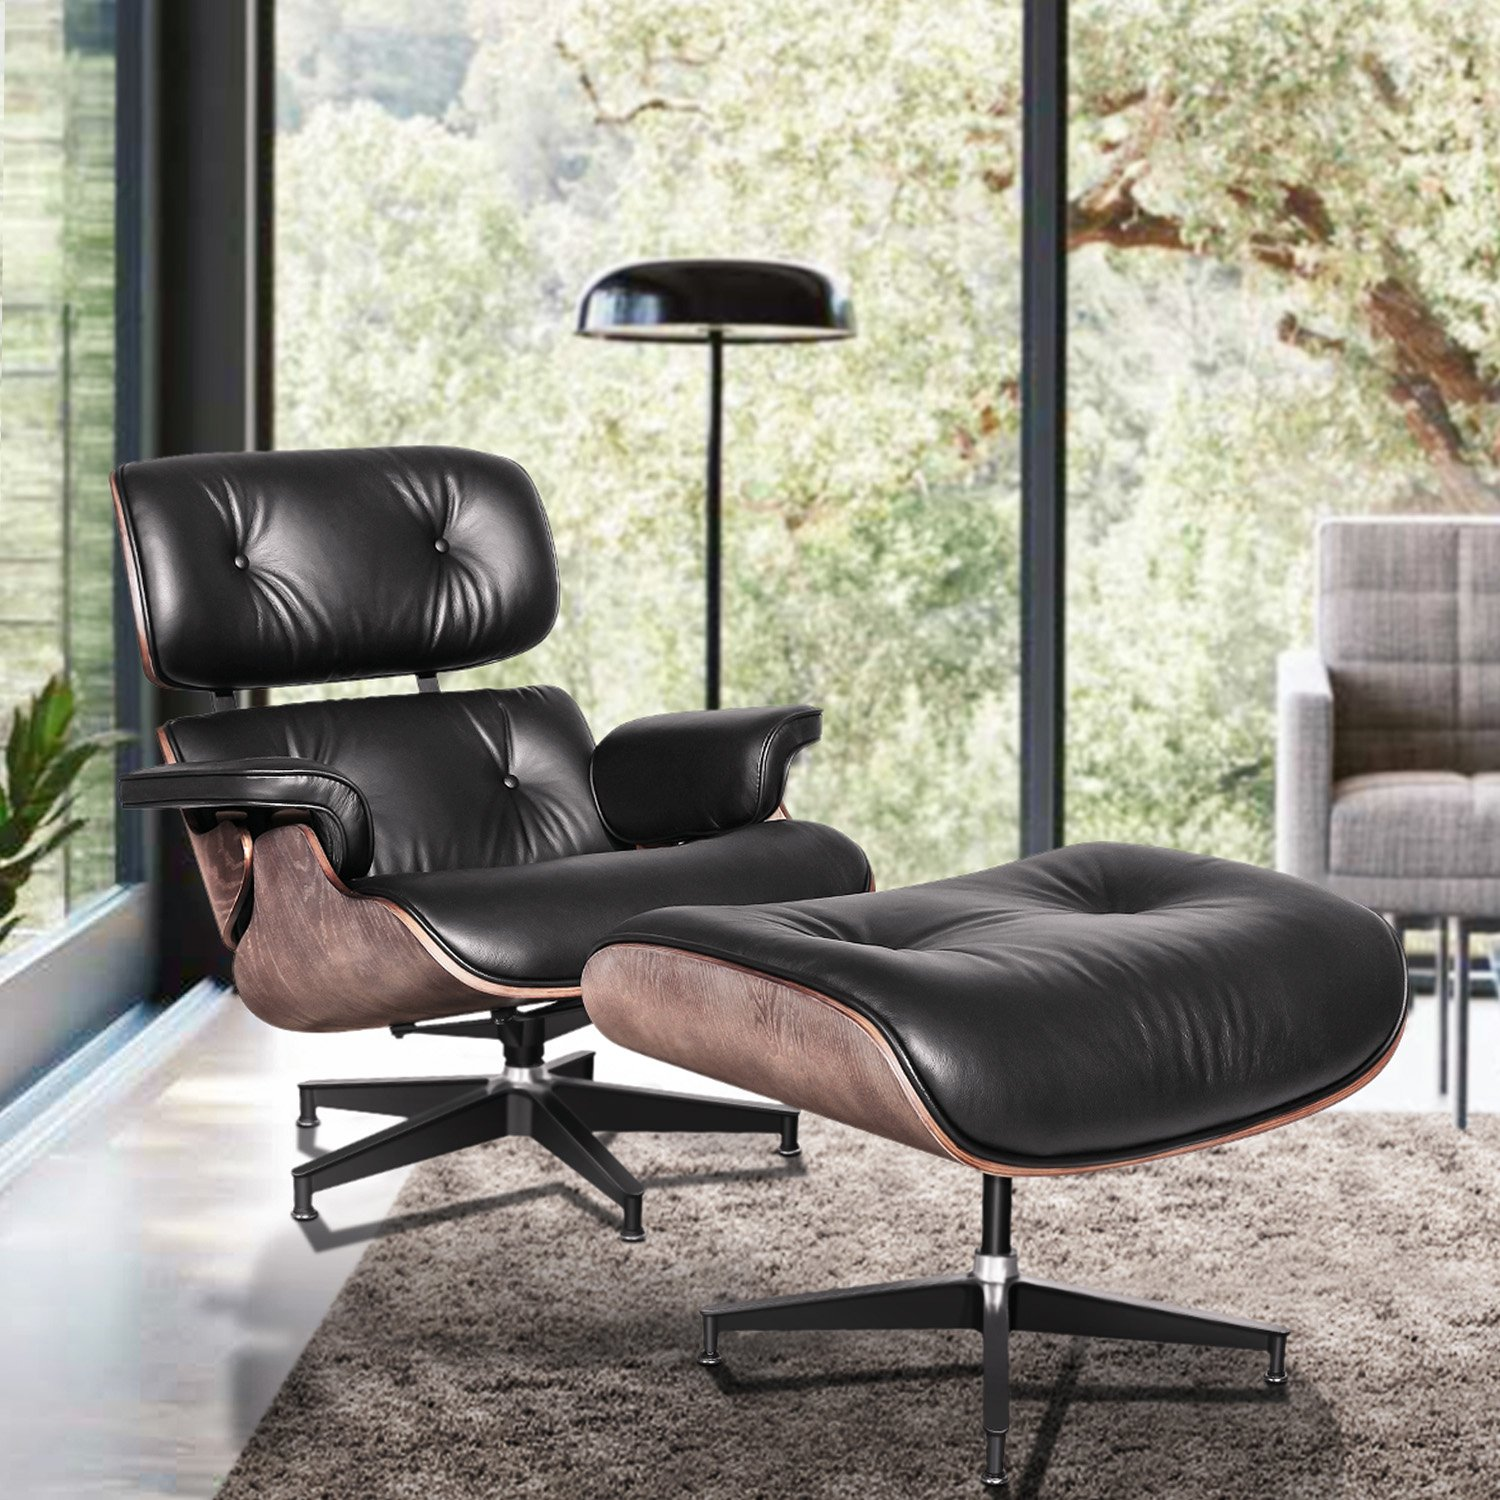 H04e3025f229f43c9aca3a10bf2698dc95 - Classic Lounge Chair with Ottoman Leisure Sofa 8 Color Genuine Leather Lounge Chair Alluminum Leg for Living/Bedding/Office Room